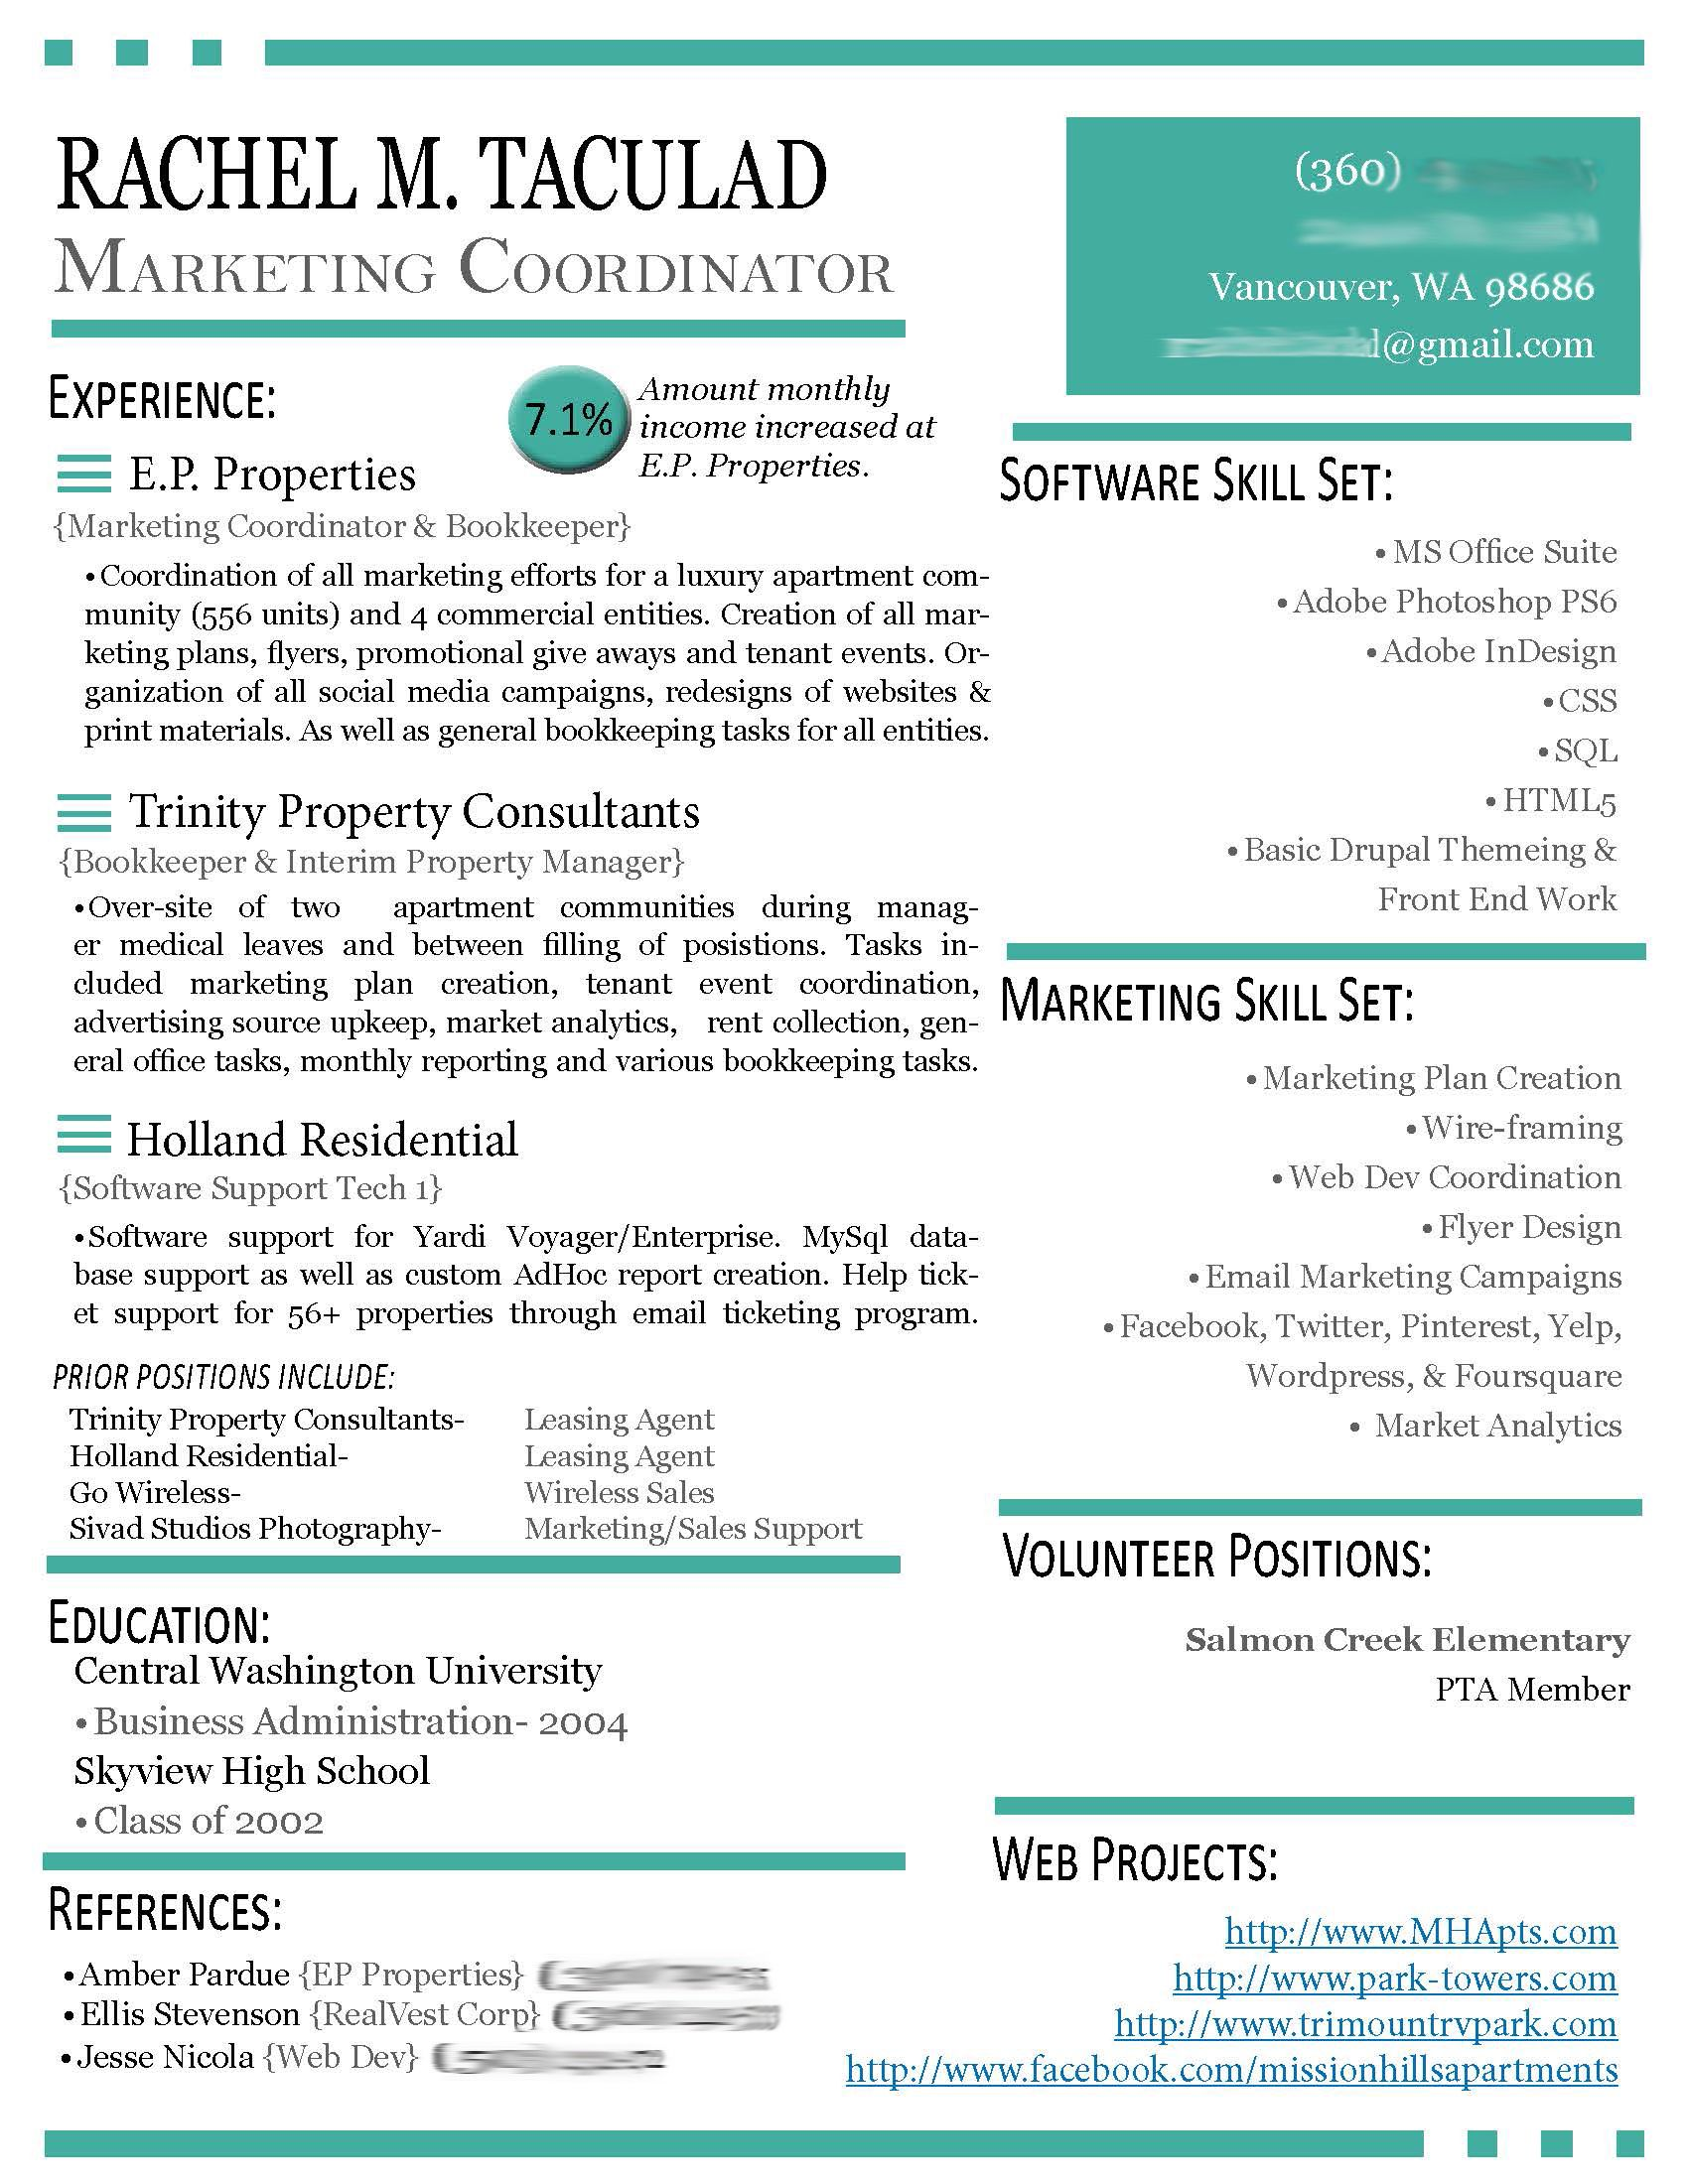 Opposenewapstandardsus  Ravishing  Images About Work Stuff On Pinterest  Resume Professional  With Magnificent  Images About Work Stuff On Pinterest  Resume Professional Resume Template And Resume Templates With Beauteous Senior Web Developer Resume Also Resume Paper Office Depot In Addition Internship Resume Objective Examples And Executive Administrative Assistant Resume Sample As Well As Examples Of Customer Service Resume Additionally Resume Donts From Pinterestcom With Opposenewapstandardsus  Magnificent  Images About Work Stuff On Pinterest  Resume Professional  With Beauteous  Images About Work Stuff On Pinterest  Resume Professional Resume Template And Resume Templates And Ravishing Senior Web Developer Resume Also Resume Paper Office Depot In Addition Internship Resume Objective Examples From Pinterestcom